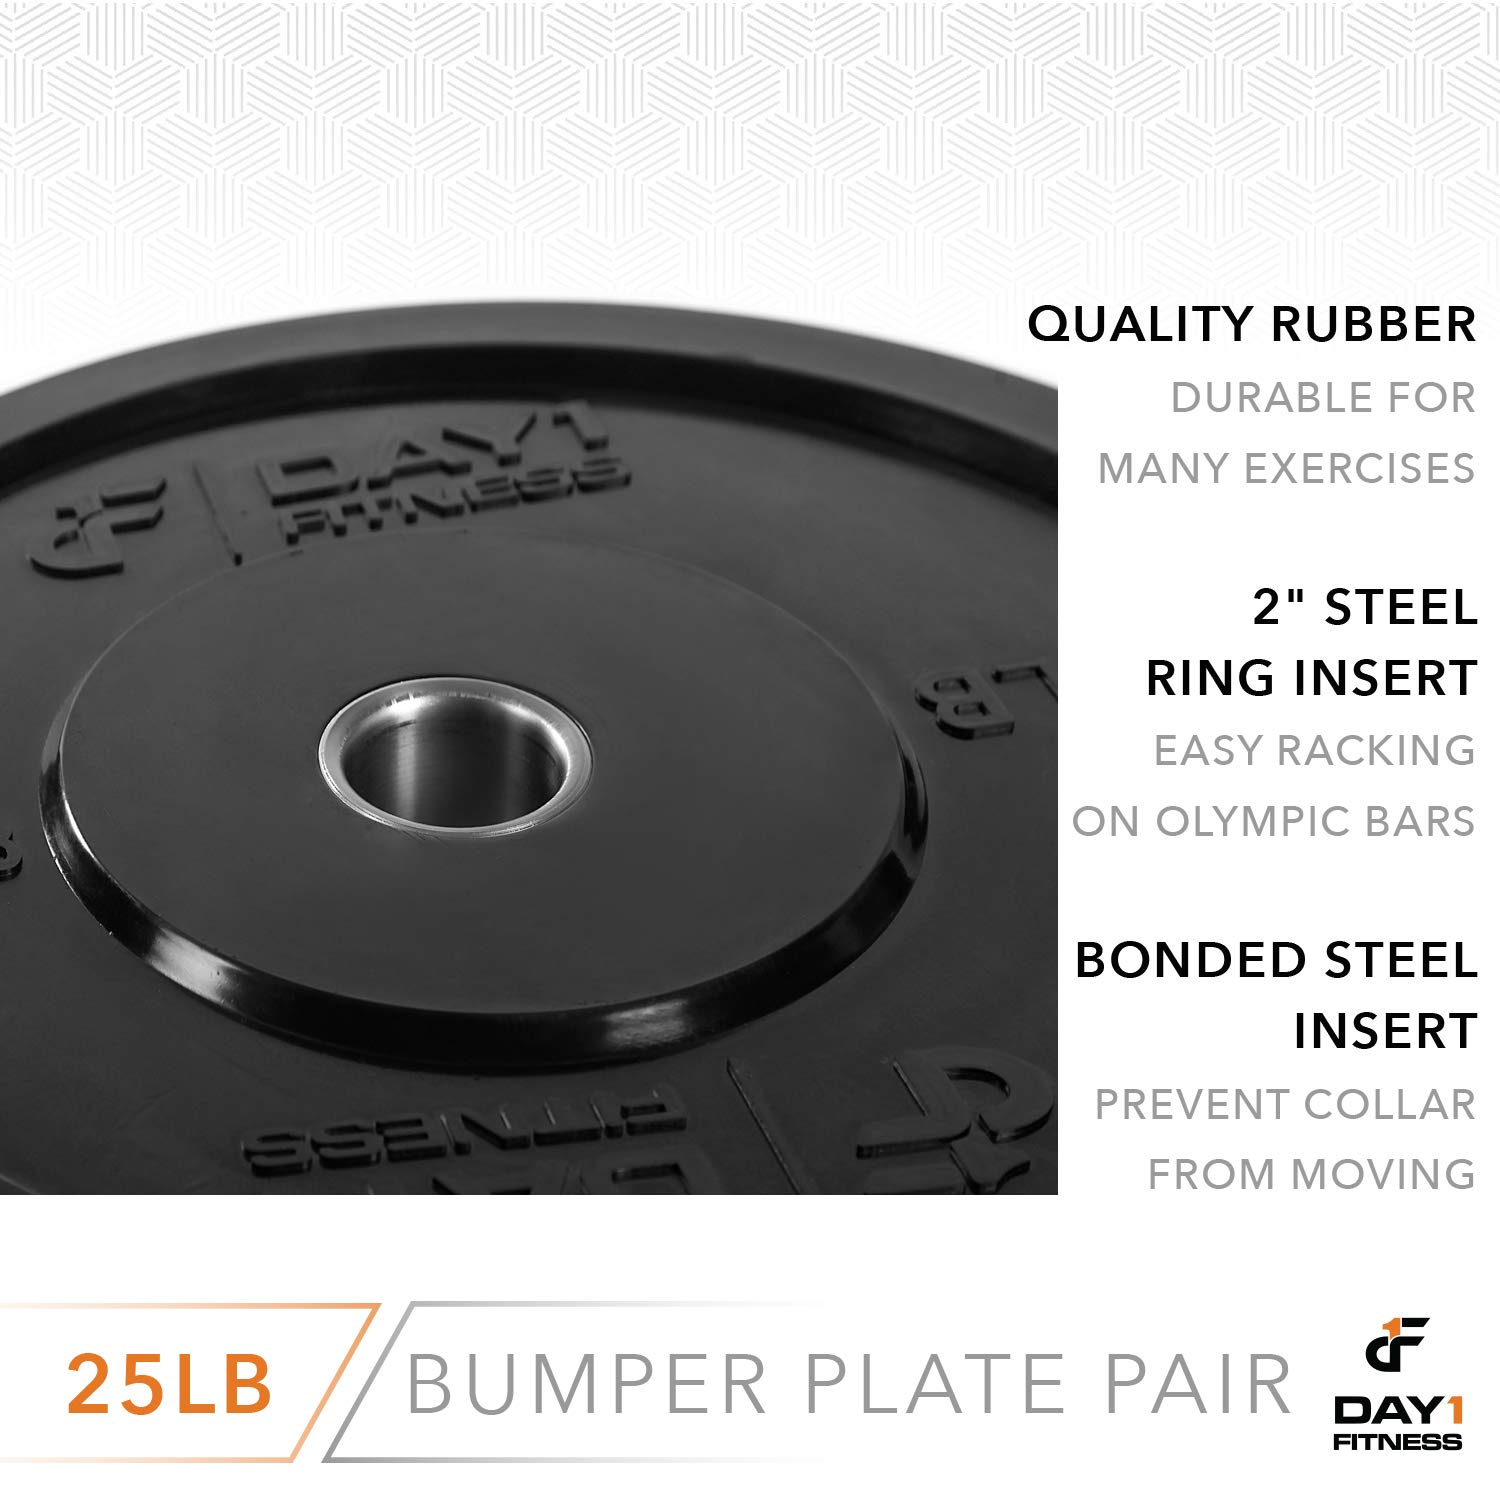 "Day 1 Fitness Olympic Bumper Weighted Plate 2"" for Barbells, Bars – 25 lb Set of 2 Plates - Shock-Absorbing, Minimal Bounce Steel Weights with Bumpers for Lifting, Strength Training, and Working Out by Day 1 Fitness (Image #5)"